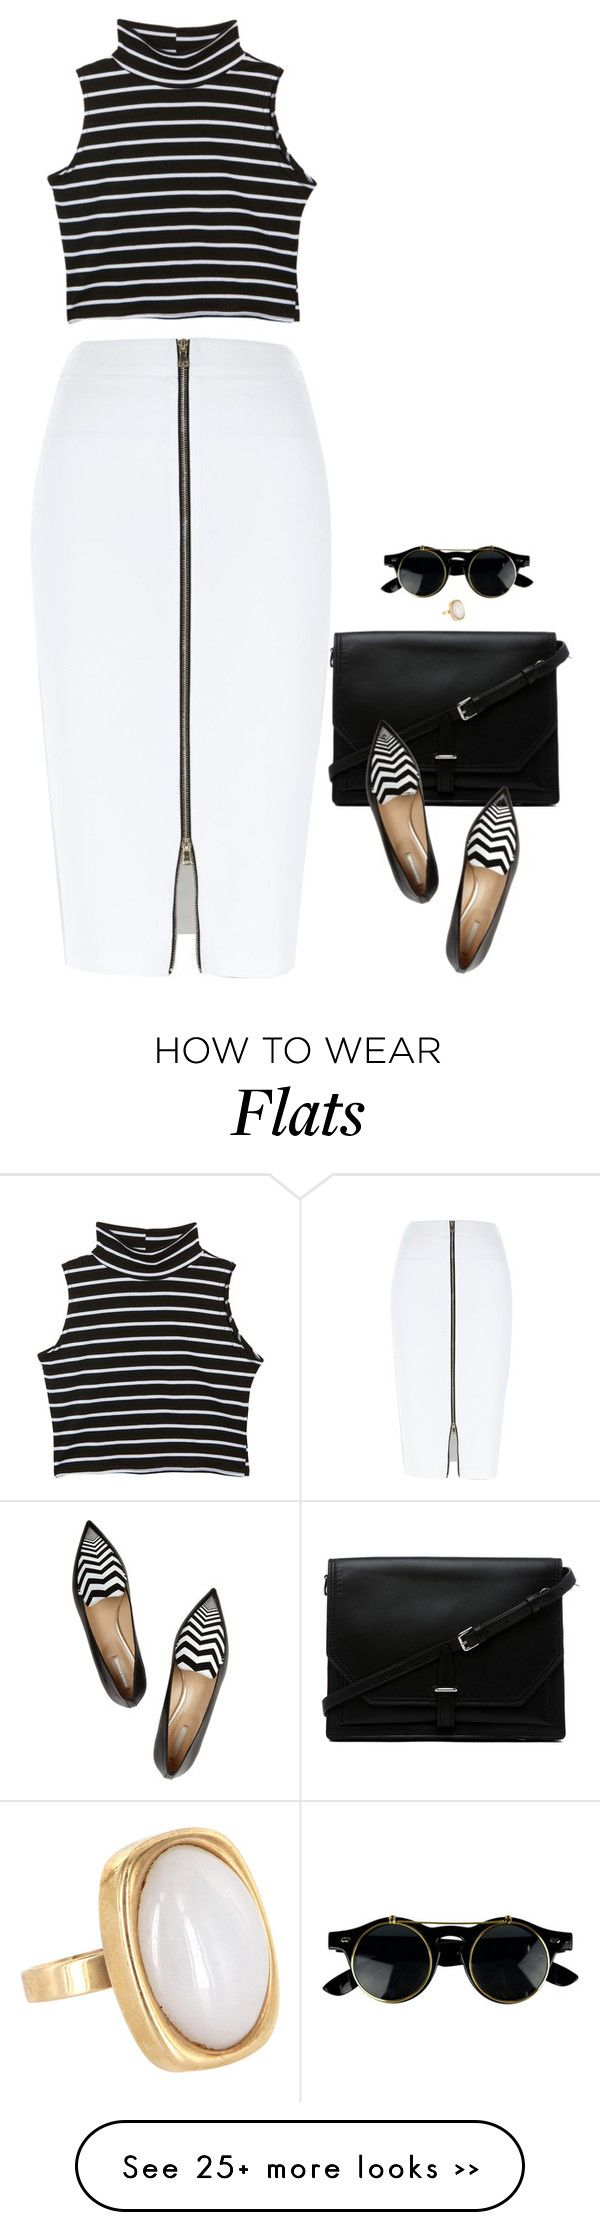 """Venice"" by miki006 on Polyvore featuring River Island, 3.1 Phillip Lim, Nicholas Kirkwood and Vintage"